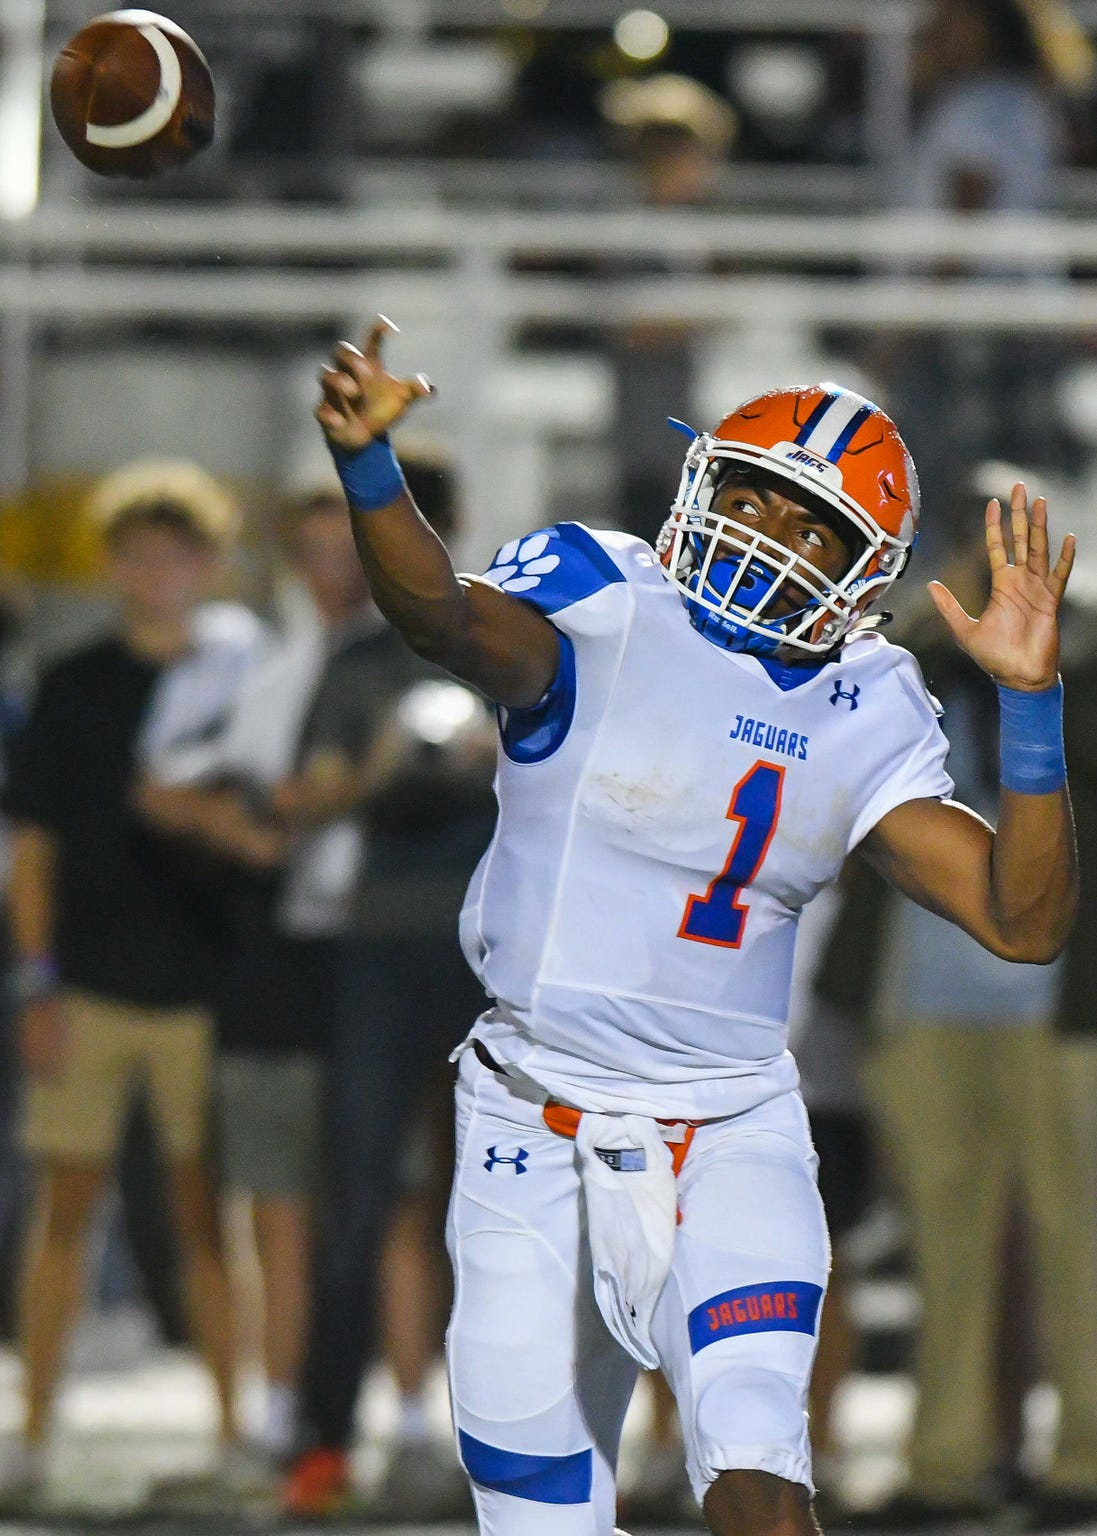 Madison Central quarterback Jimmy Holiday (1) throws the ball against Brandon at Brandon High School, Friday August 17, 2018.(Bob Smith-For The Clarion Ledger)